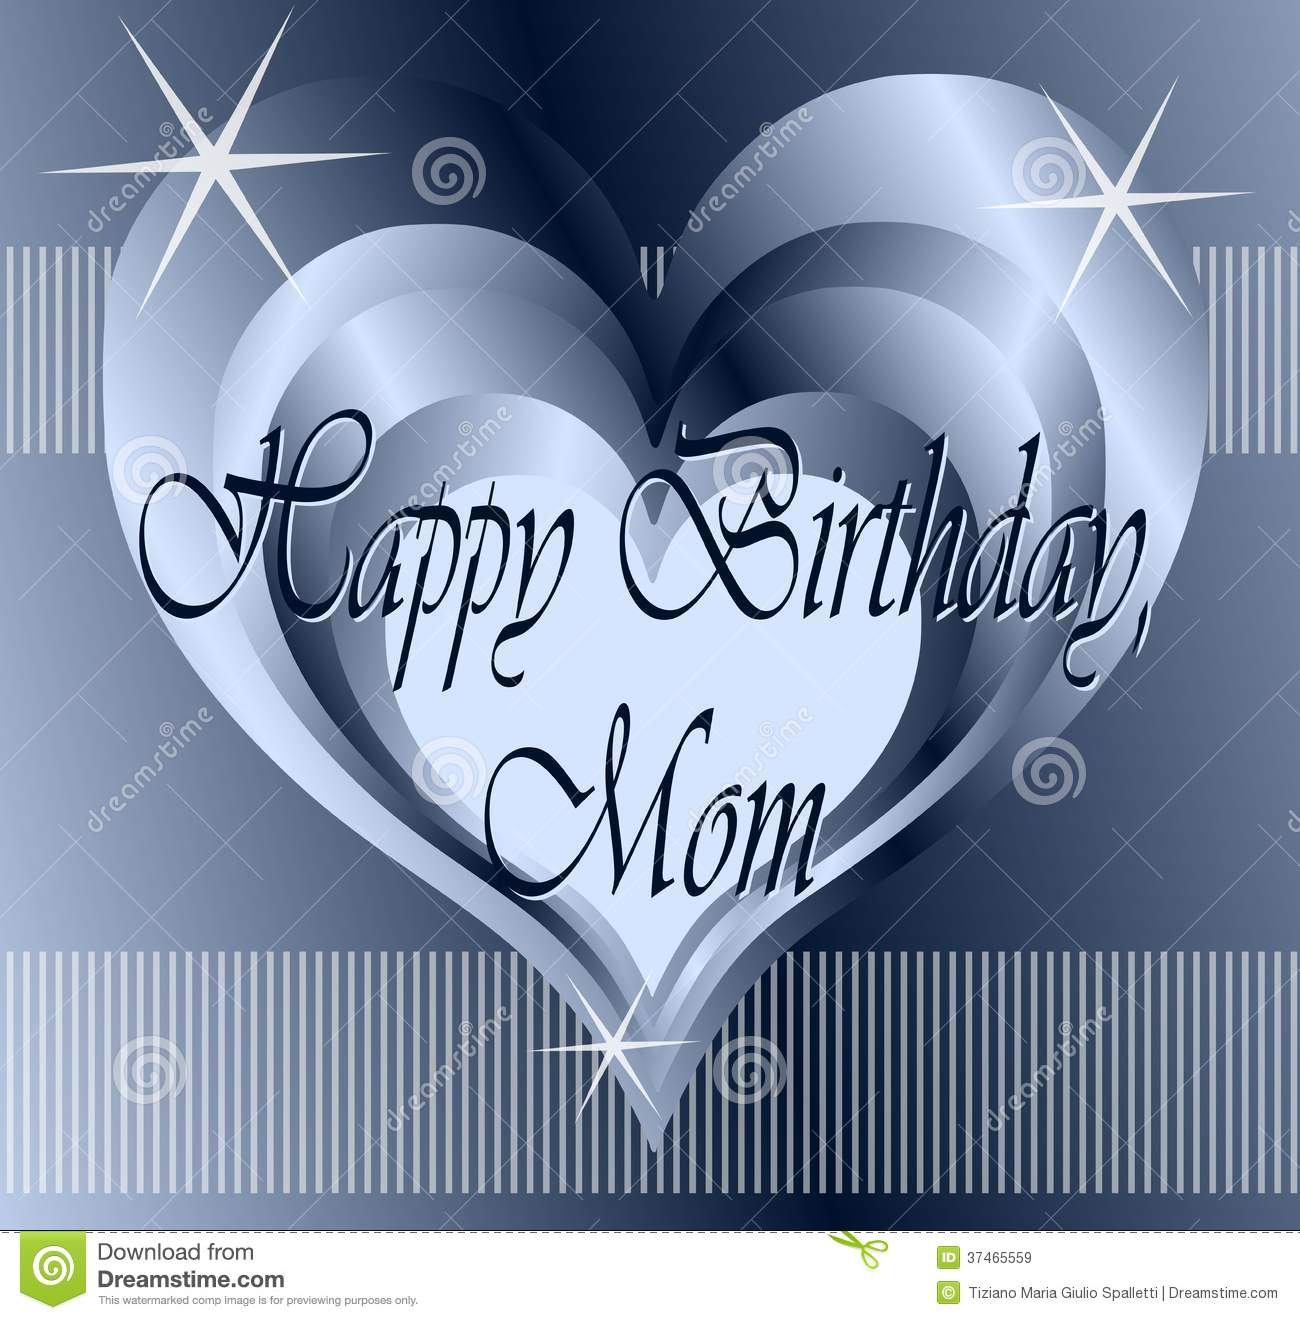 download happy birthday greeting images ; happy-birthday-mom-nice-elegant-greeting-card-our-mothers-37465559